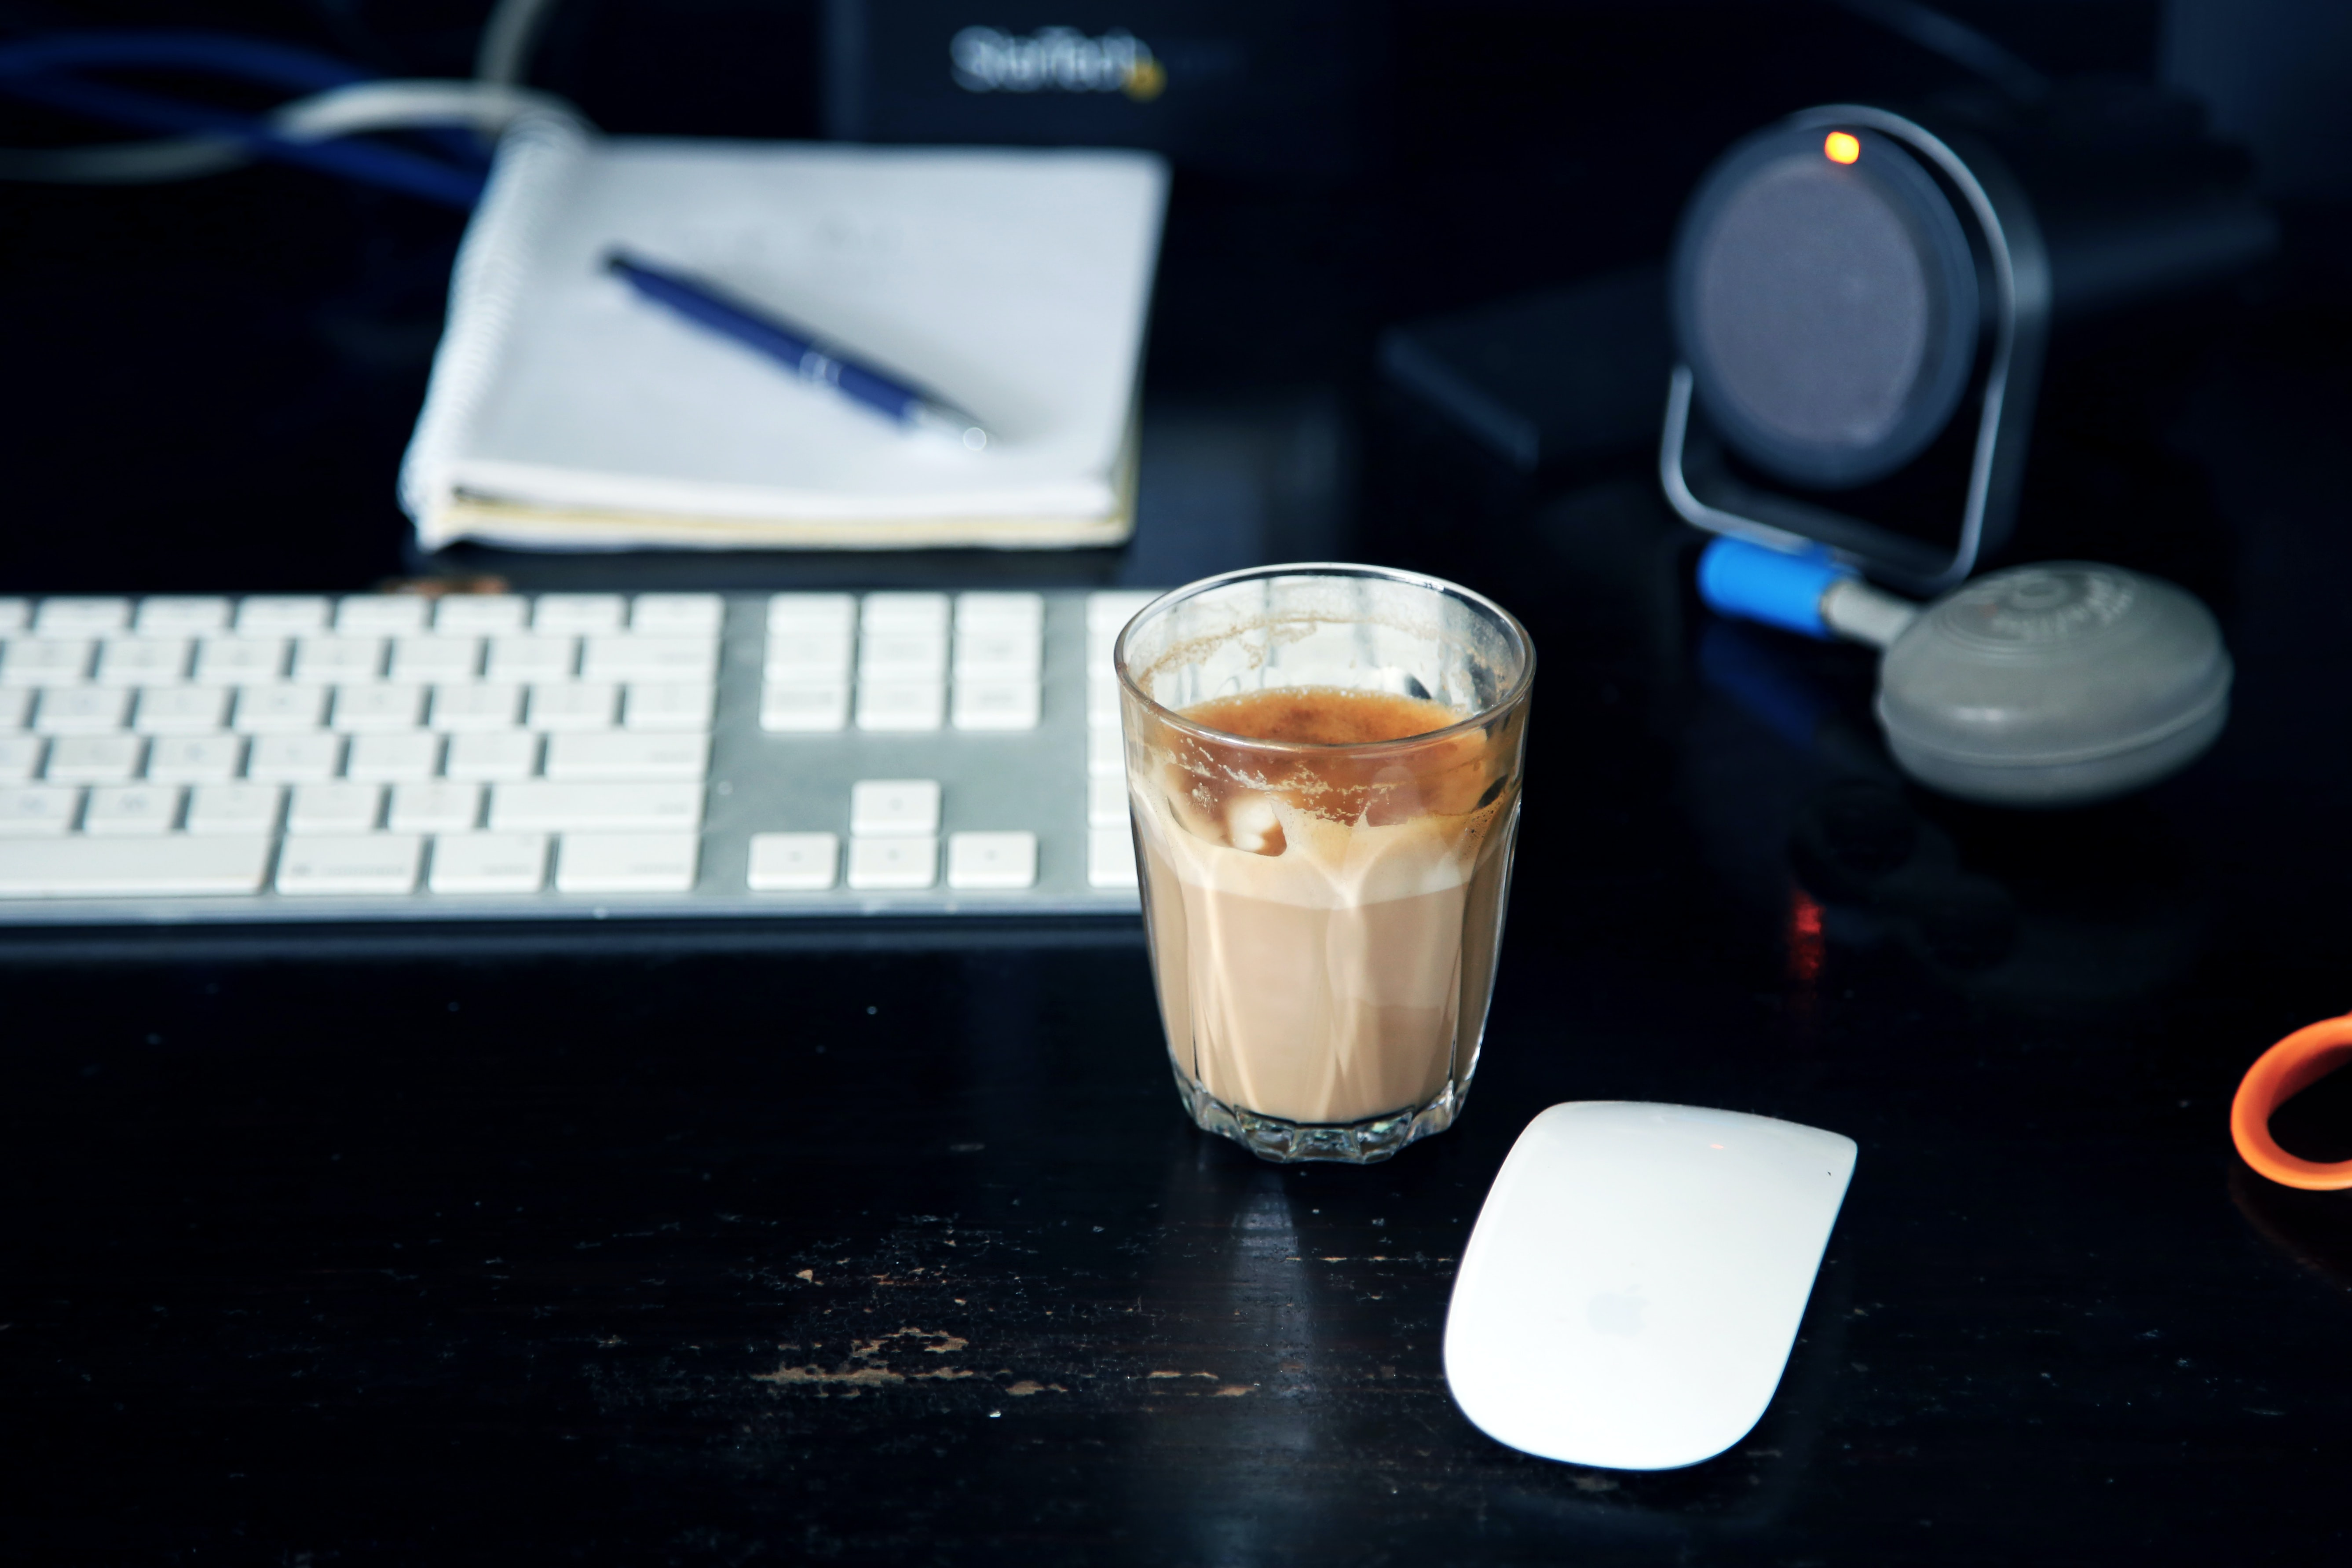 A glass of latte on a work desk.